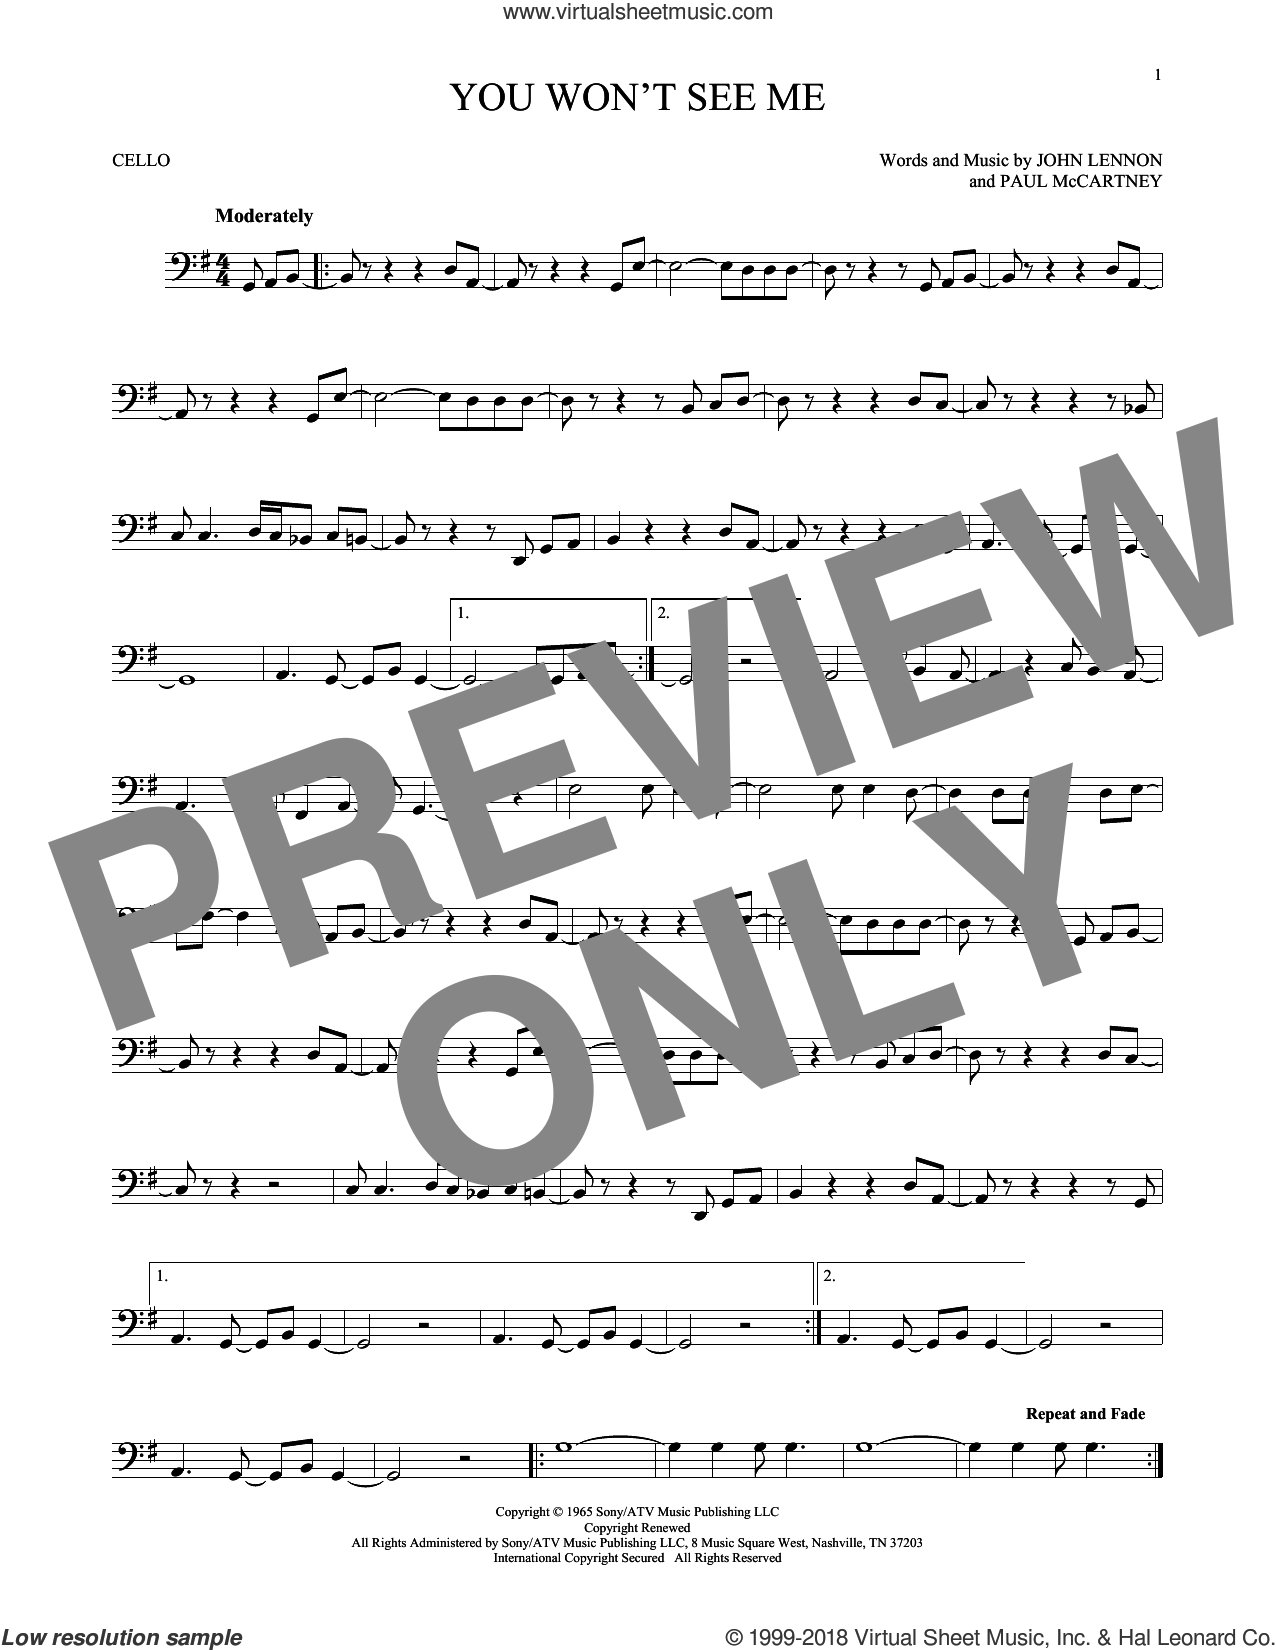 You Won't See Me sheet music for cello solo by The Beatles, John Lennon and Paul McCartney, intermediate skill level